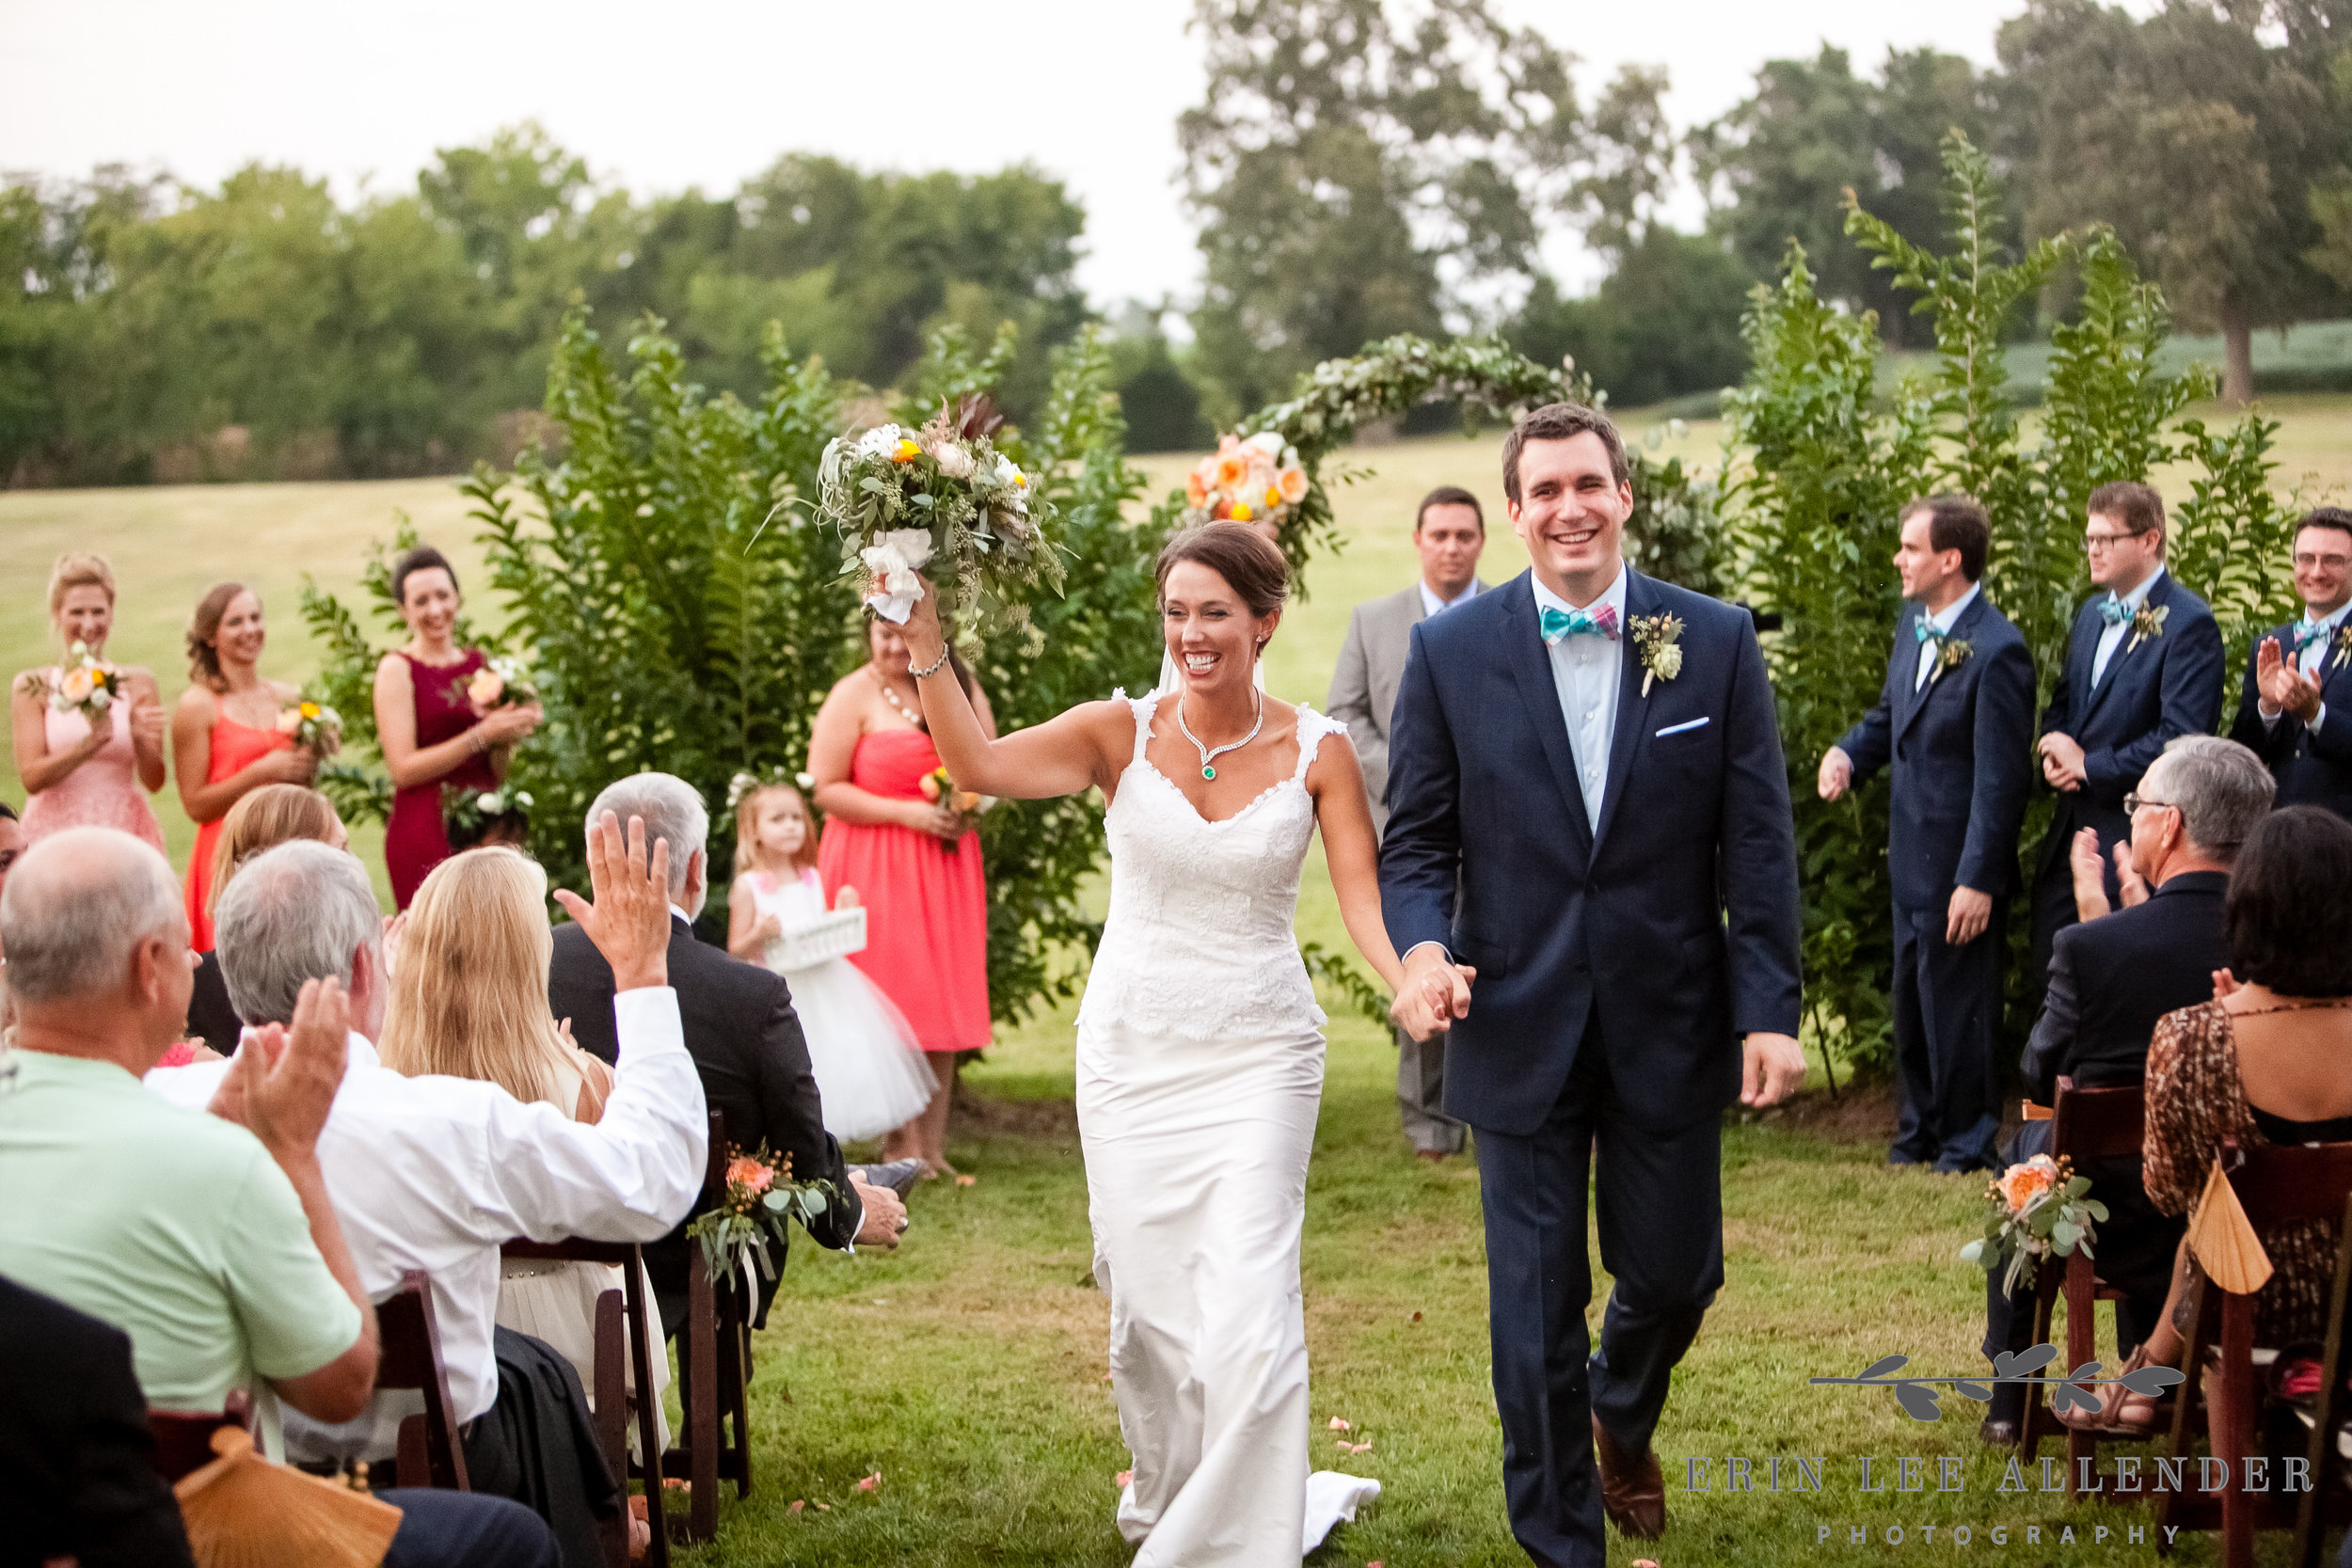 Bride_Groom_Walk_Down_Aisle_Farm_Wedding